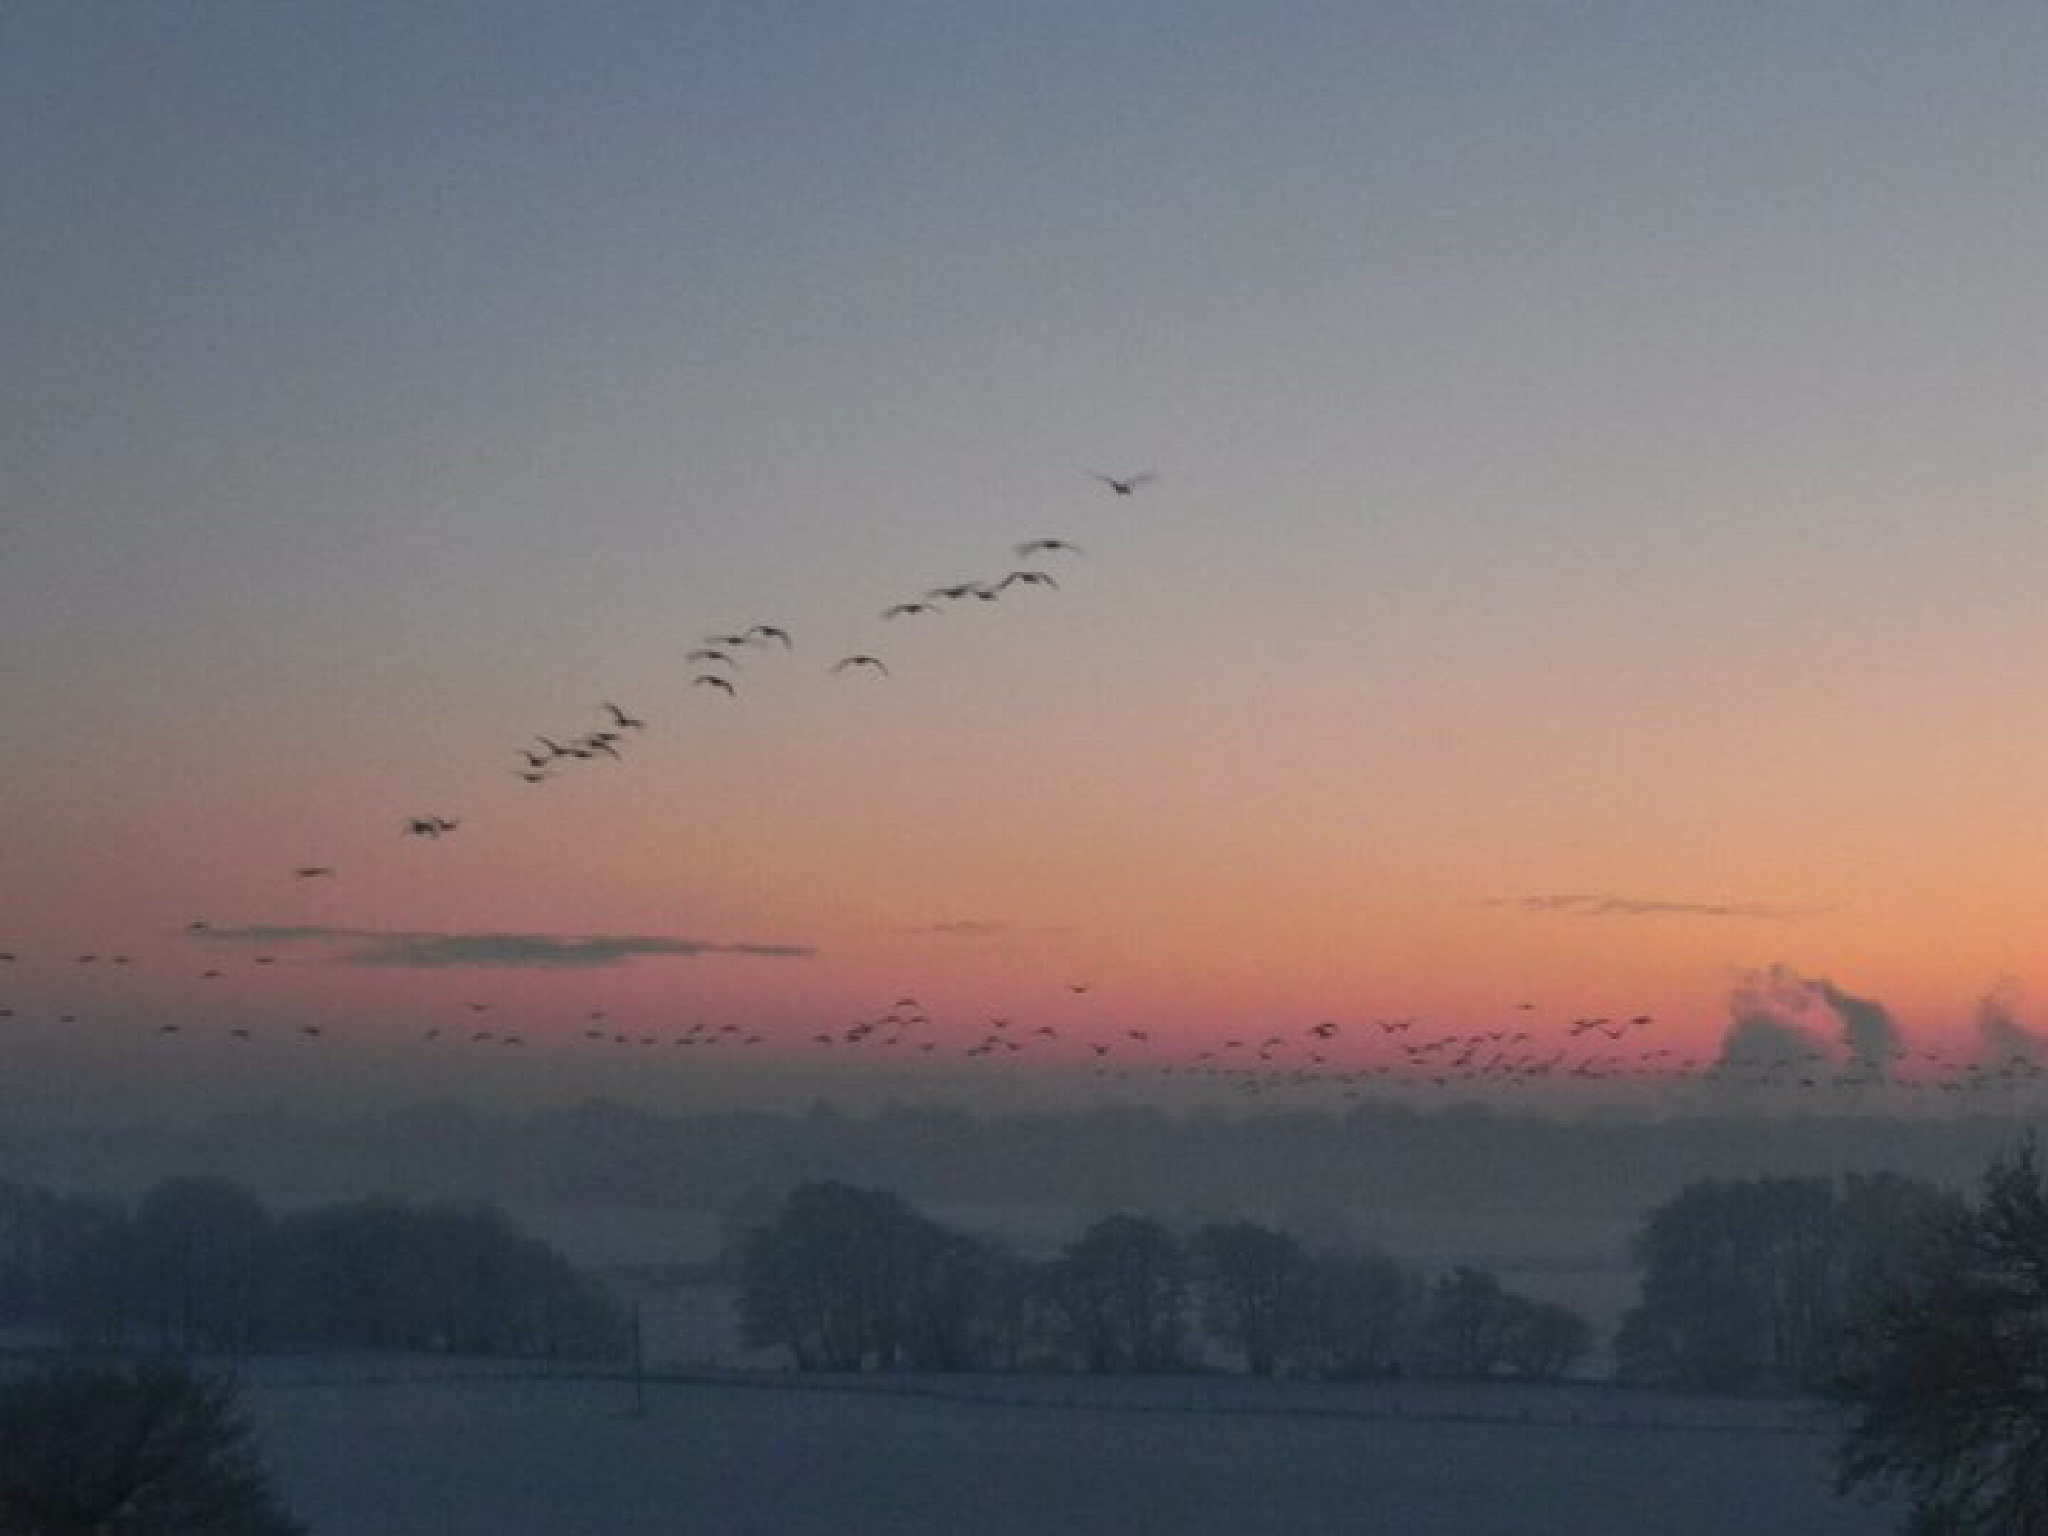 Autumn migration of geese over Marbury mere by Peter Stowell